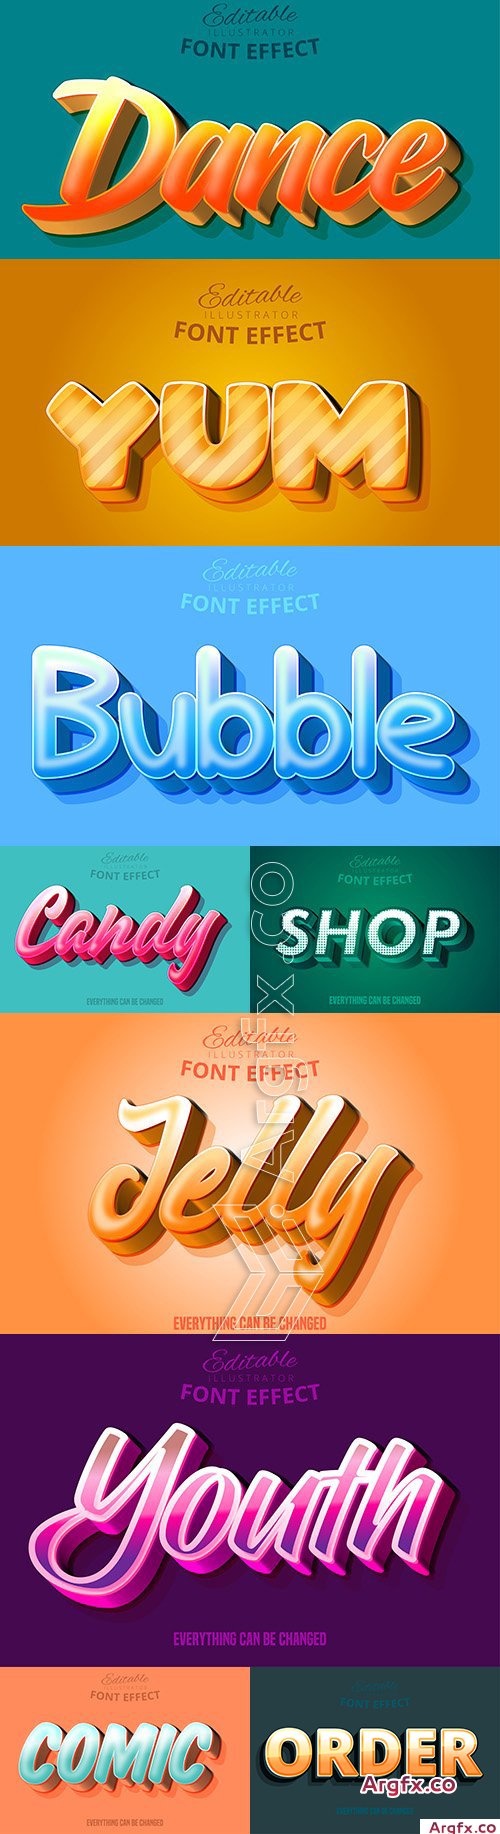 Editable font effect text collection illustration 25